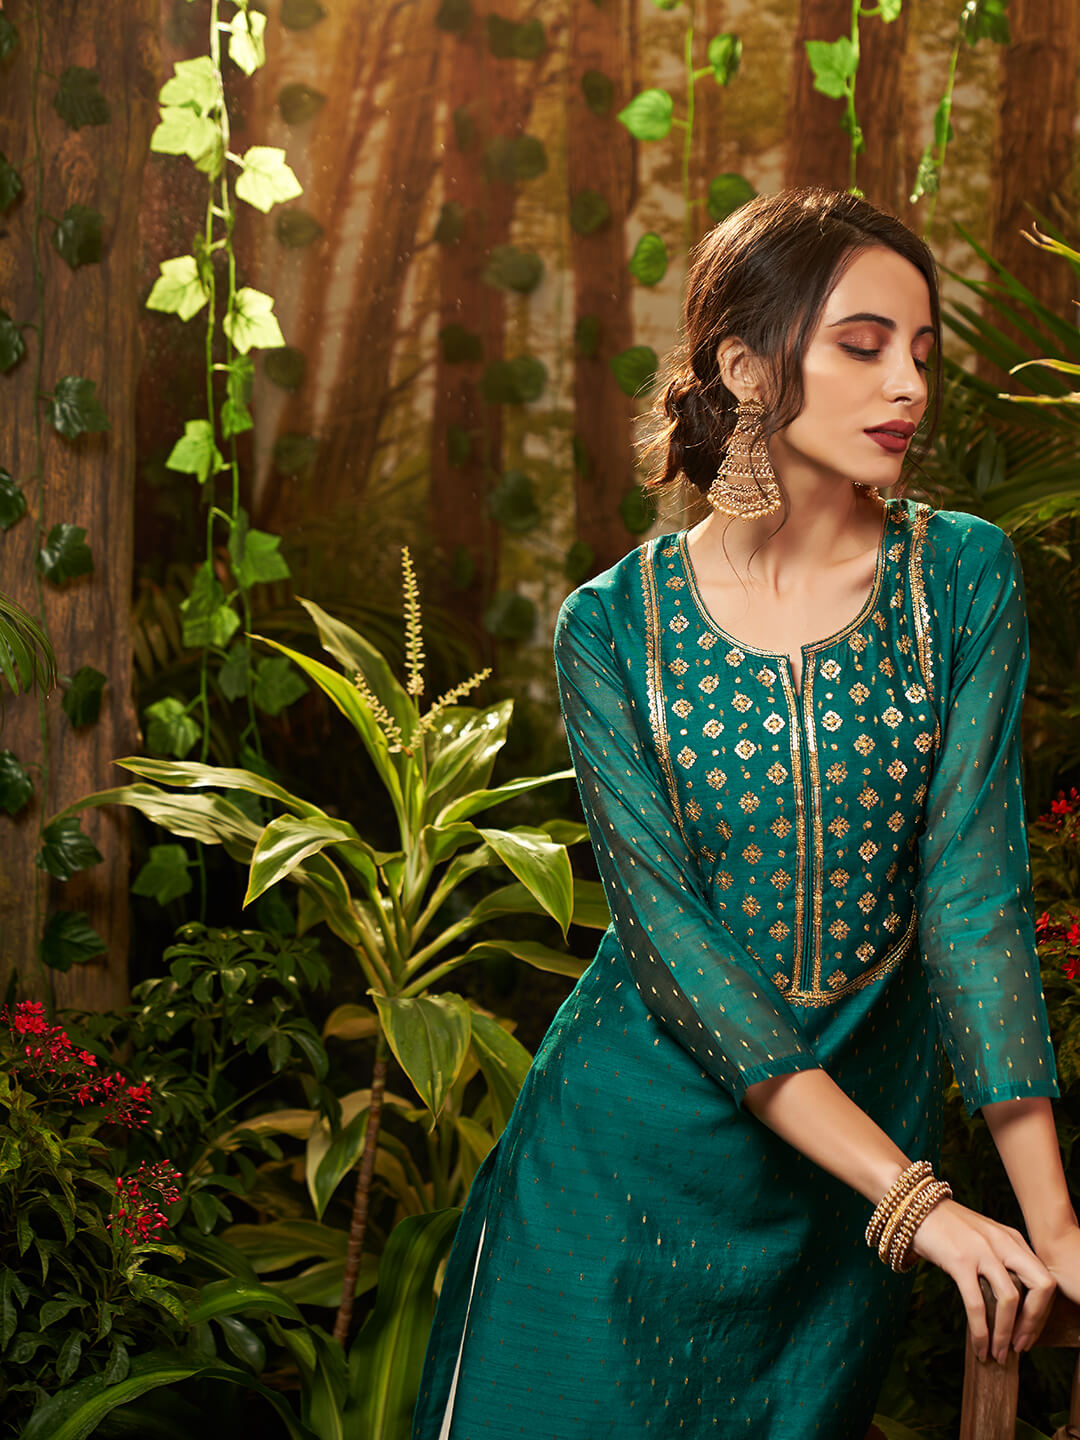 Sequins Embellished Chanderi Kurta – Teal Green